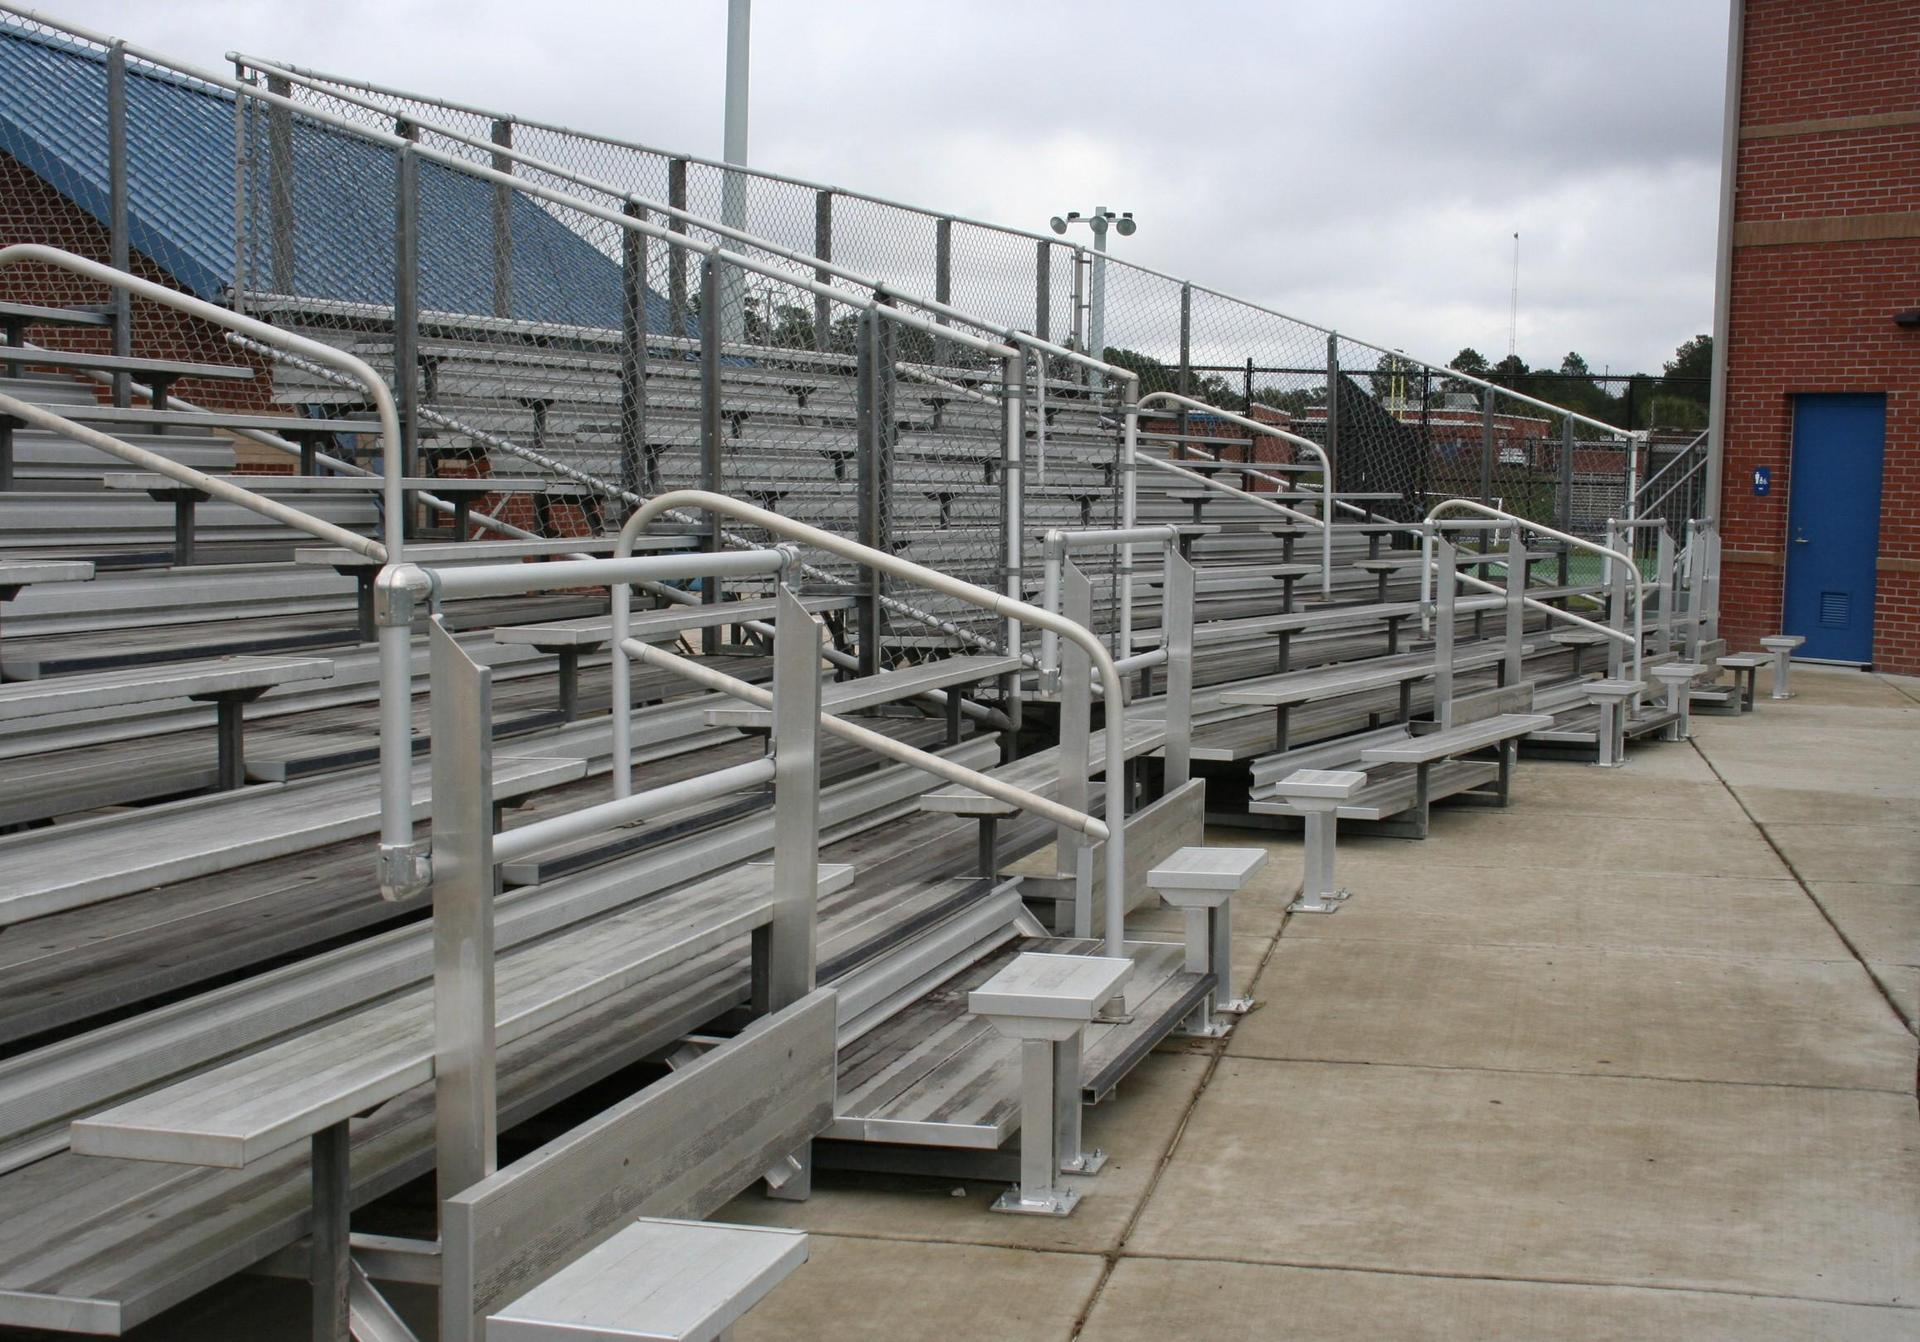 ADA SEATING AREA ADDED TO THE BASEBALL HOME AND VISITOR SIDES